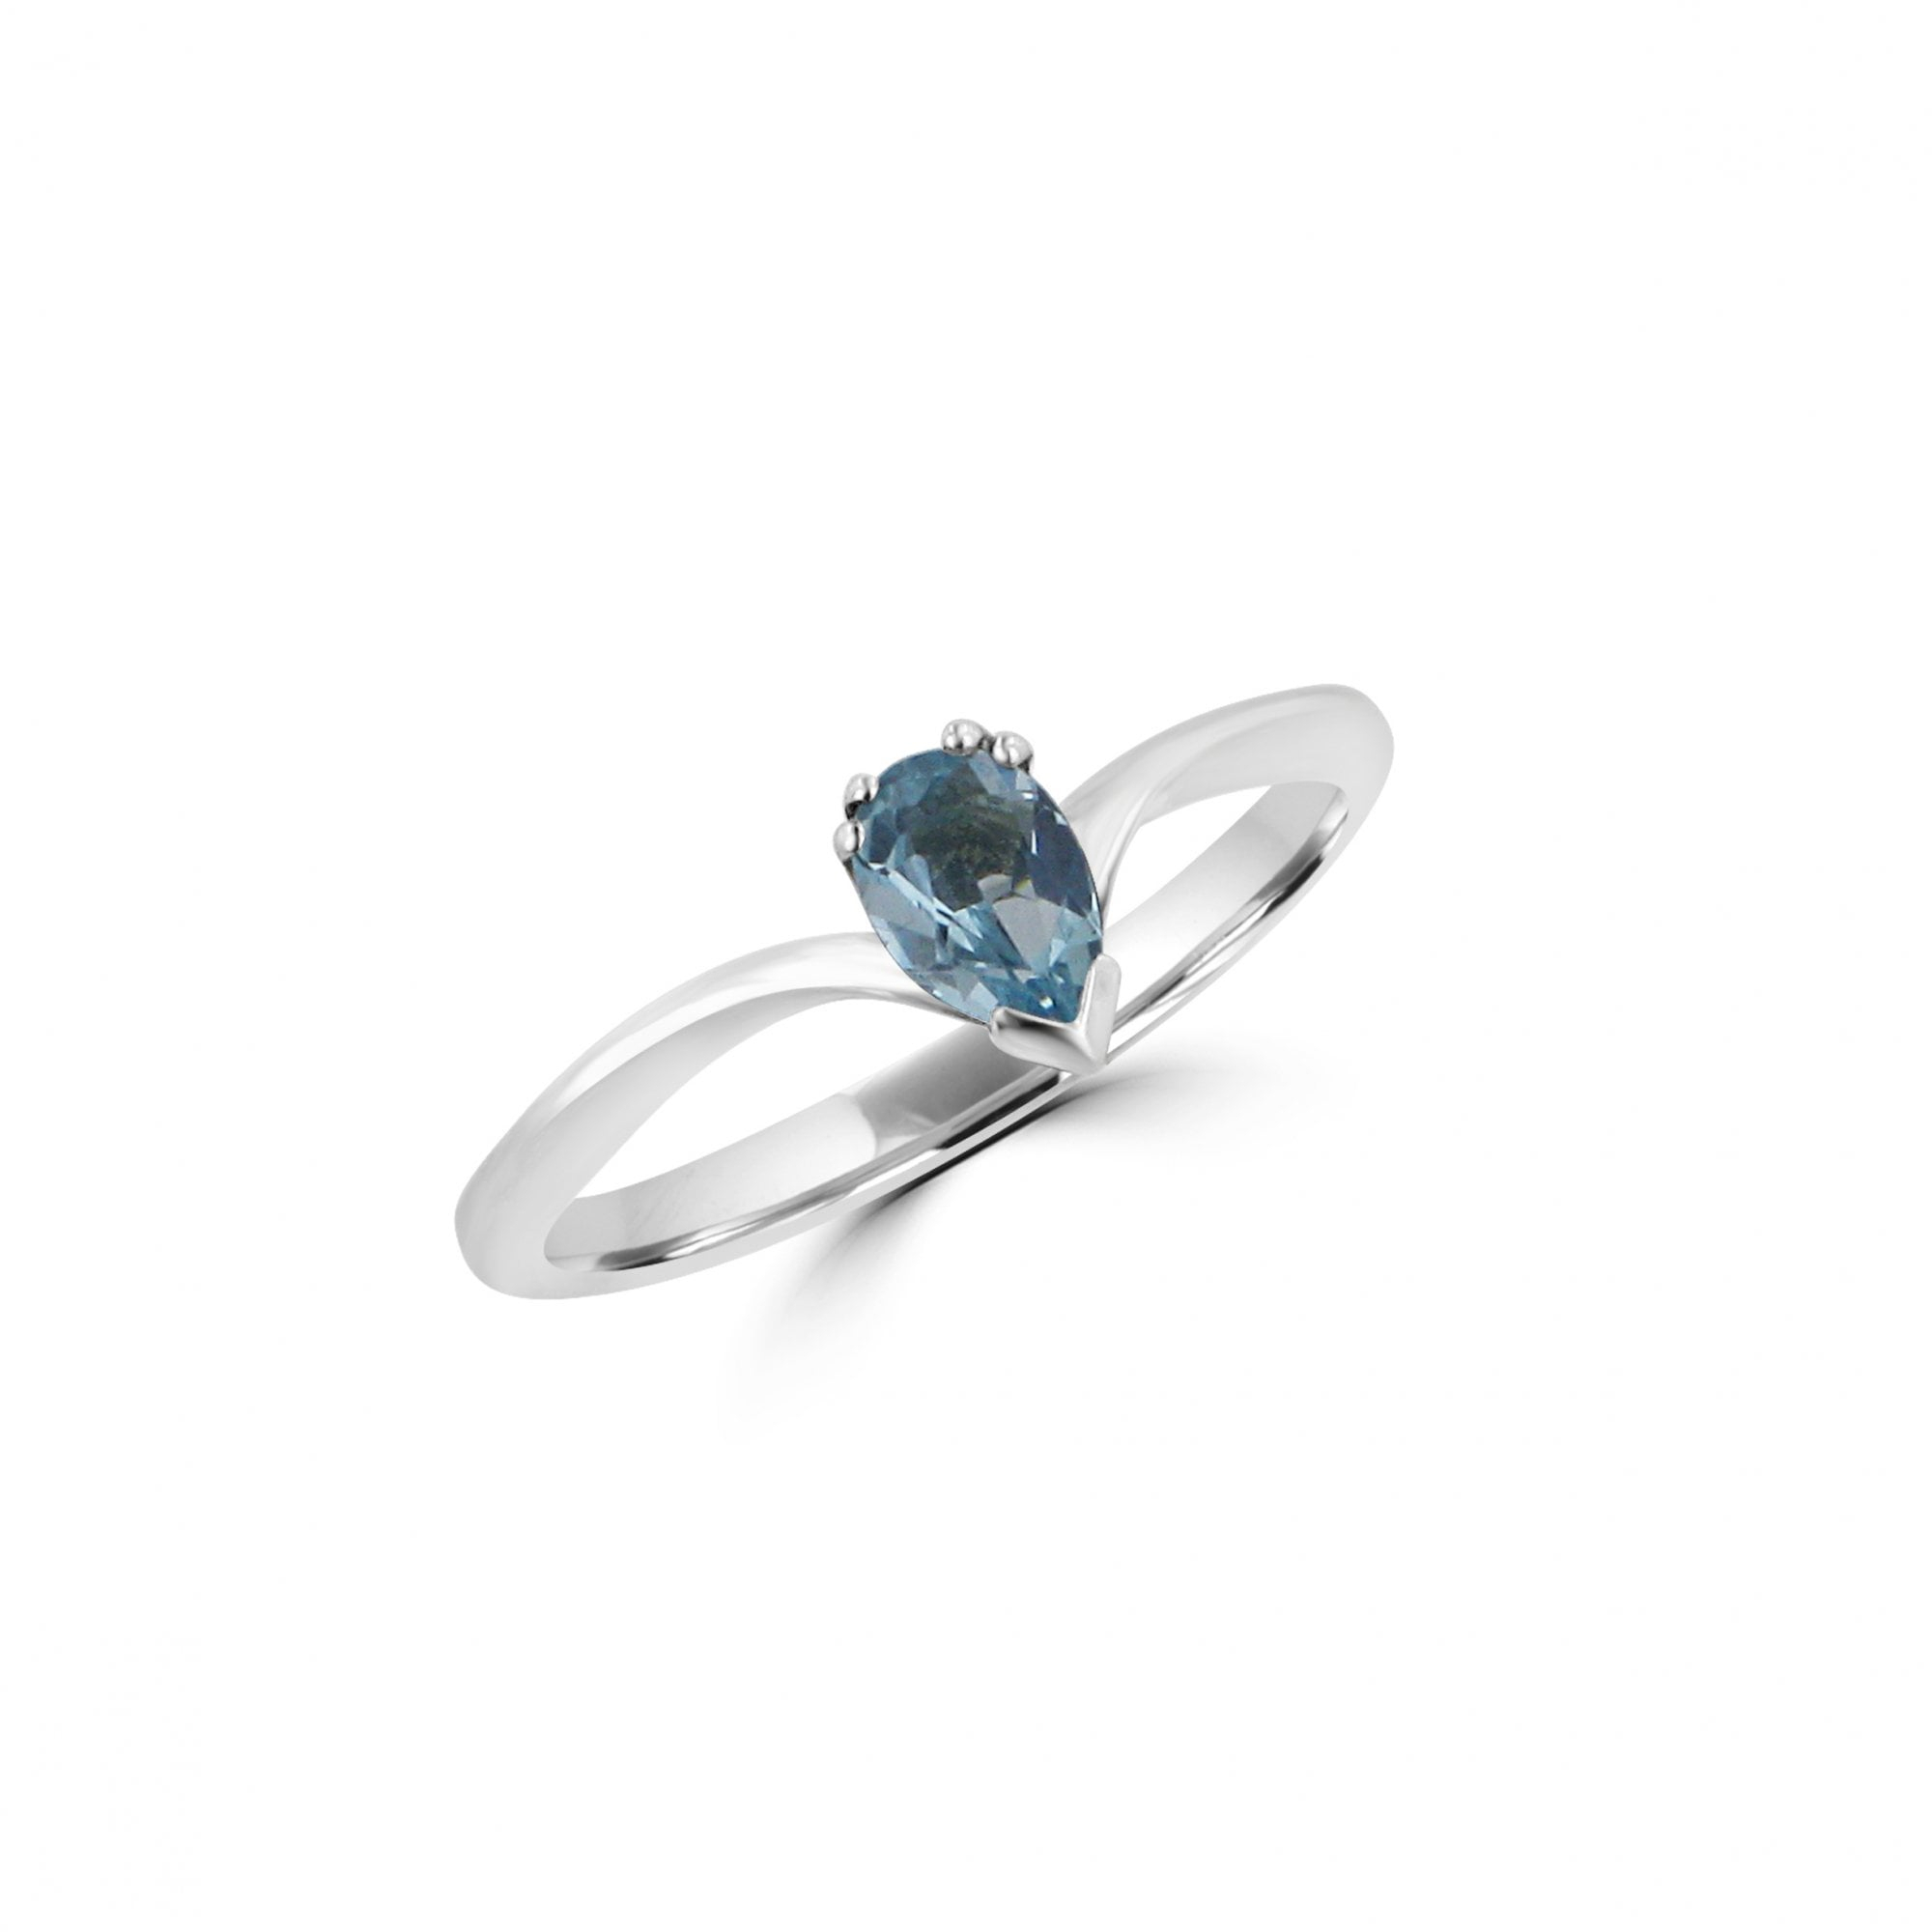 Avanti Sterling Silver Wishbone Ring With Pear Blue Topaz Pertaining To Most Current Tiara Wishbone Rings (View 3 of 25)